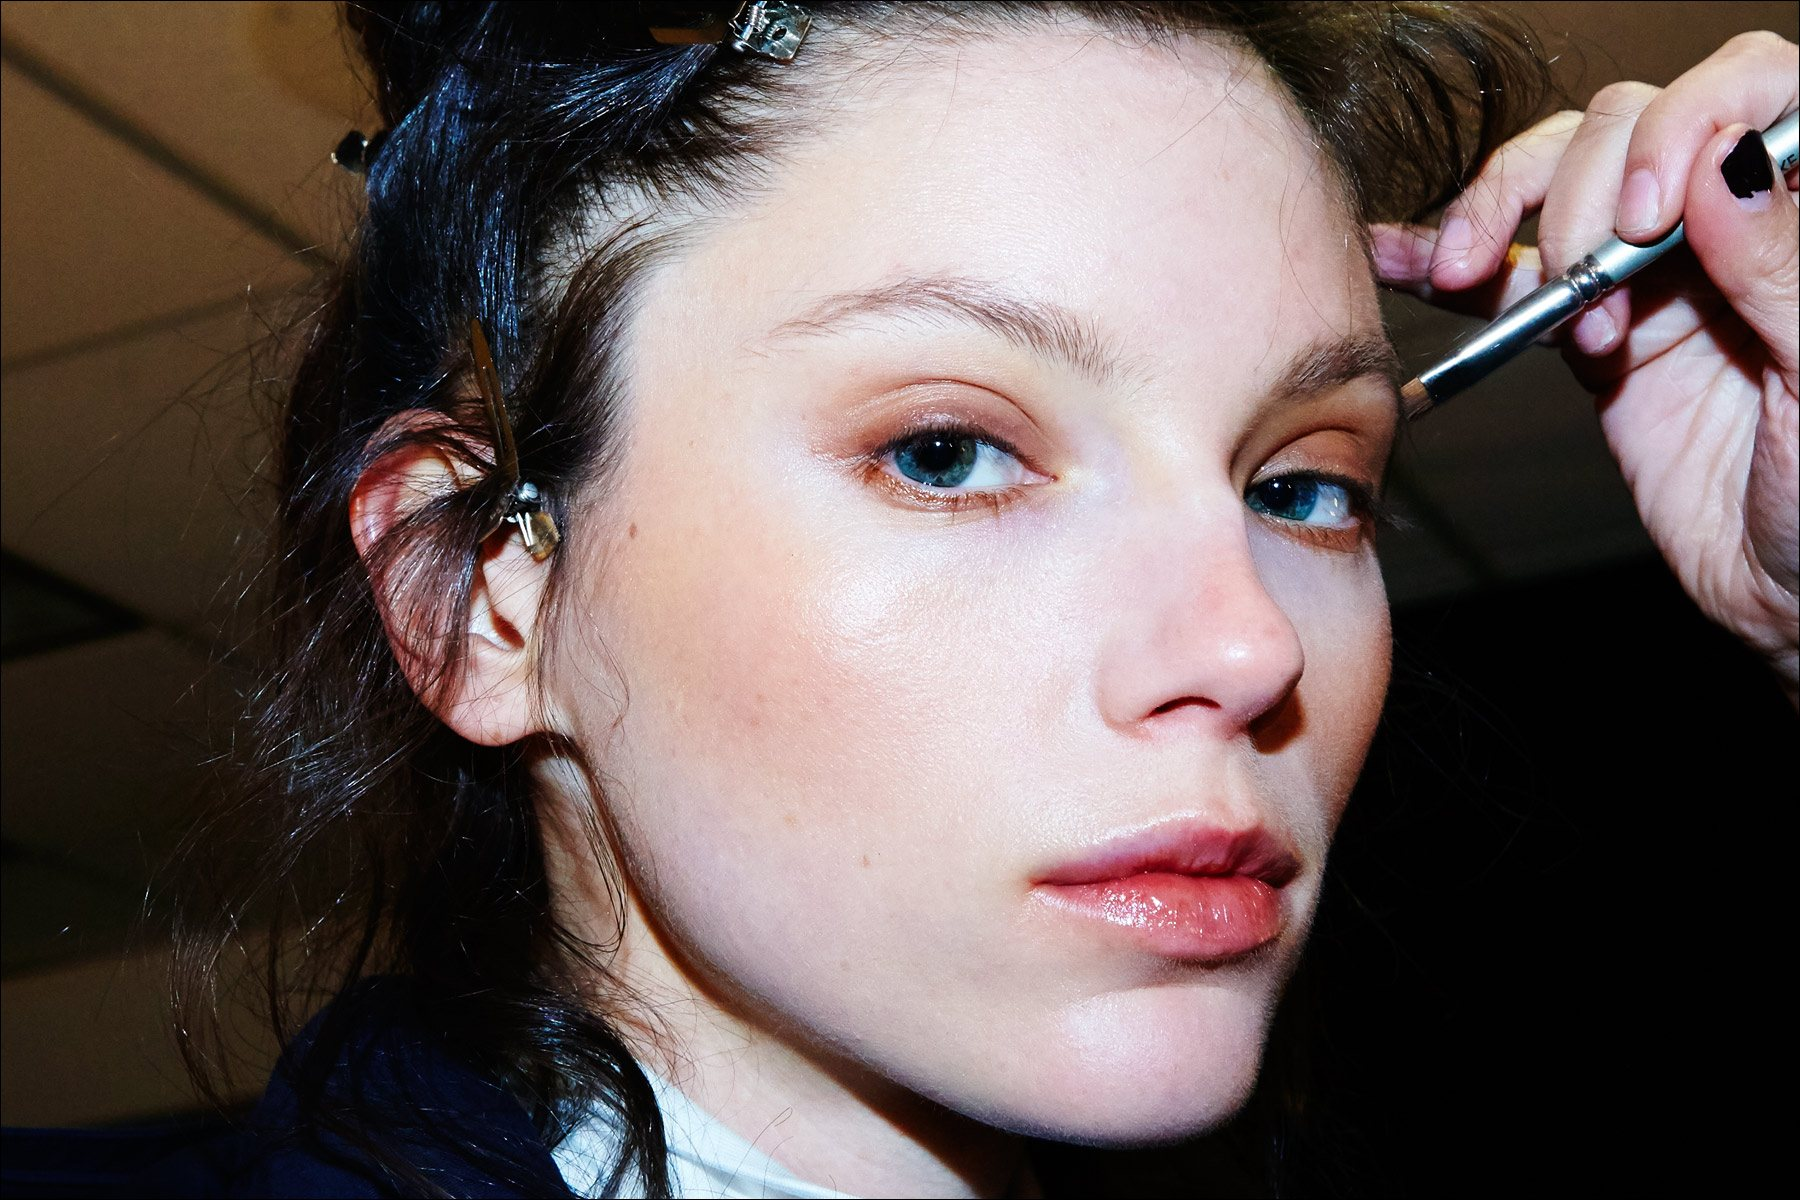 A brunette model gets her makeup applied backstage at the Adam Selman Fall 2017 womenswear show. Photographed by Alexander Thompson for Ponyboy magazine NY.